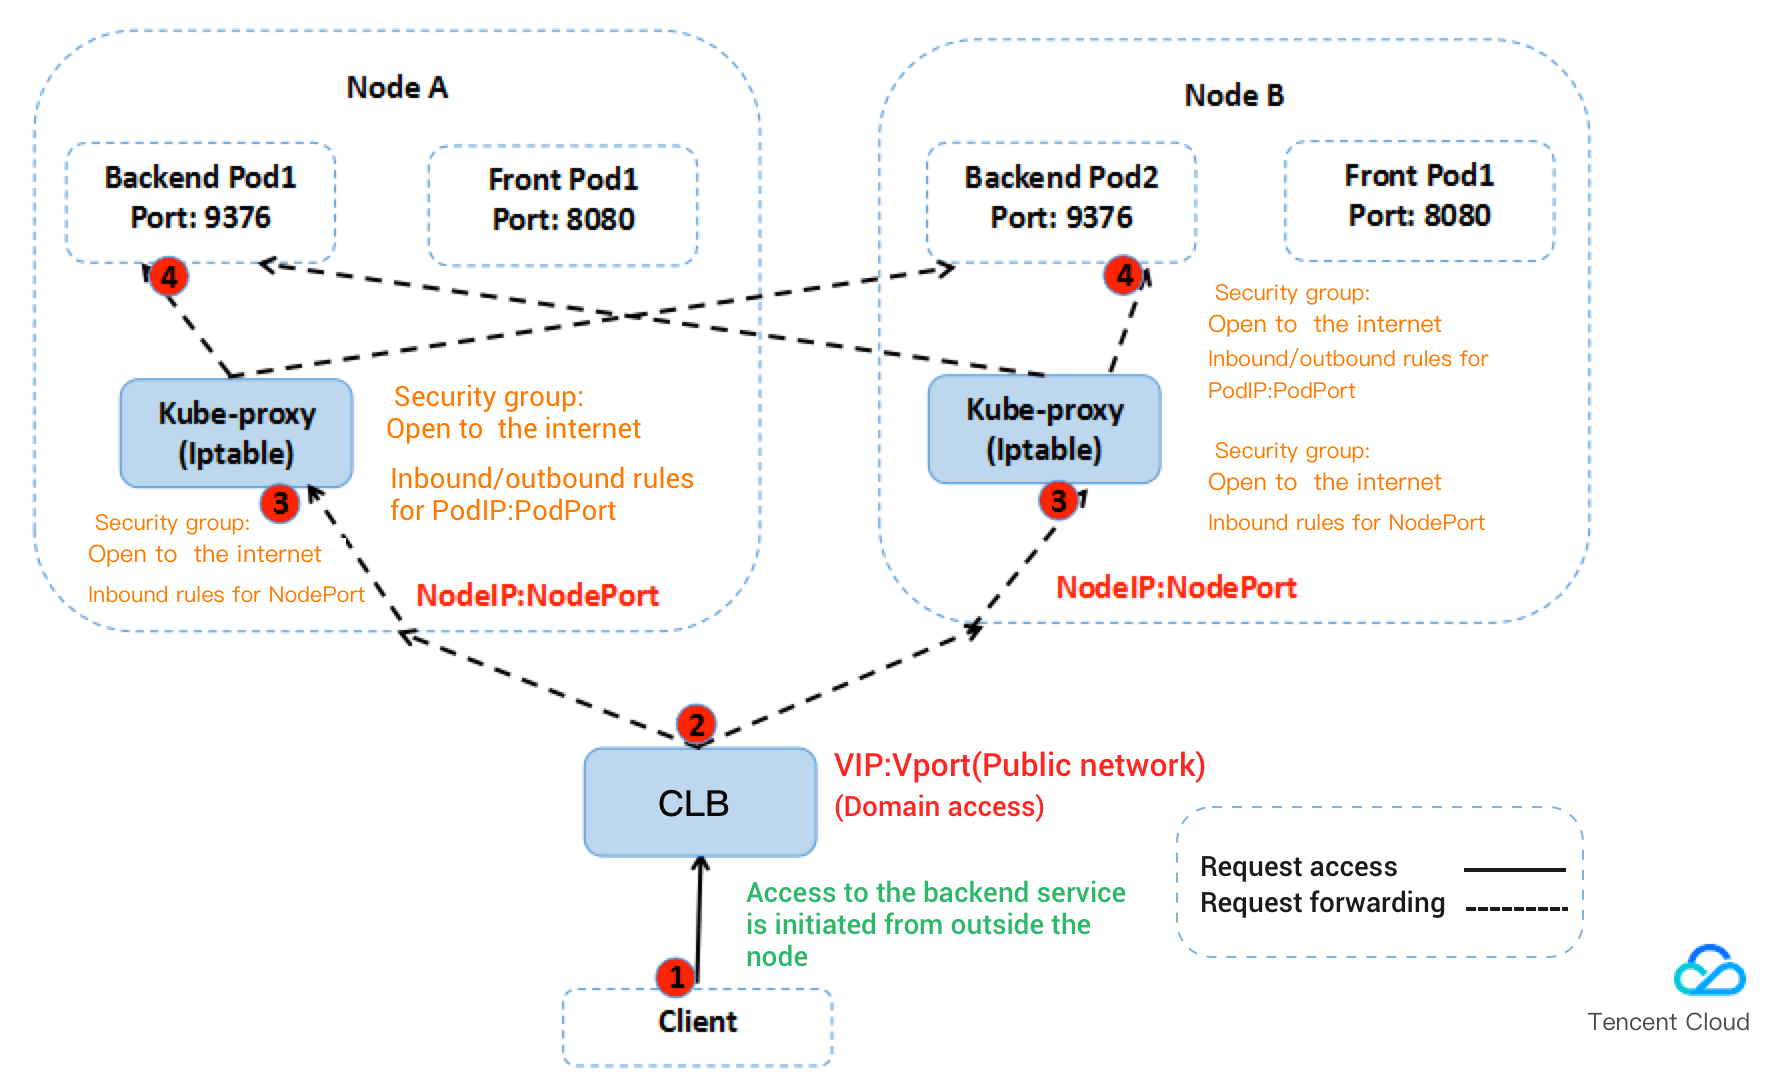 Public network access by CLB